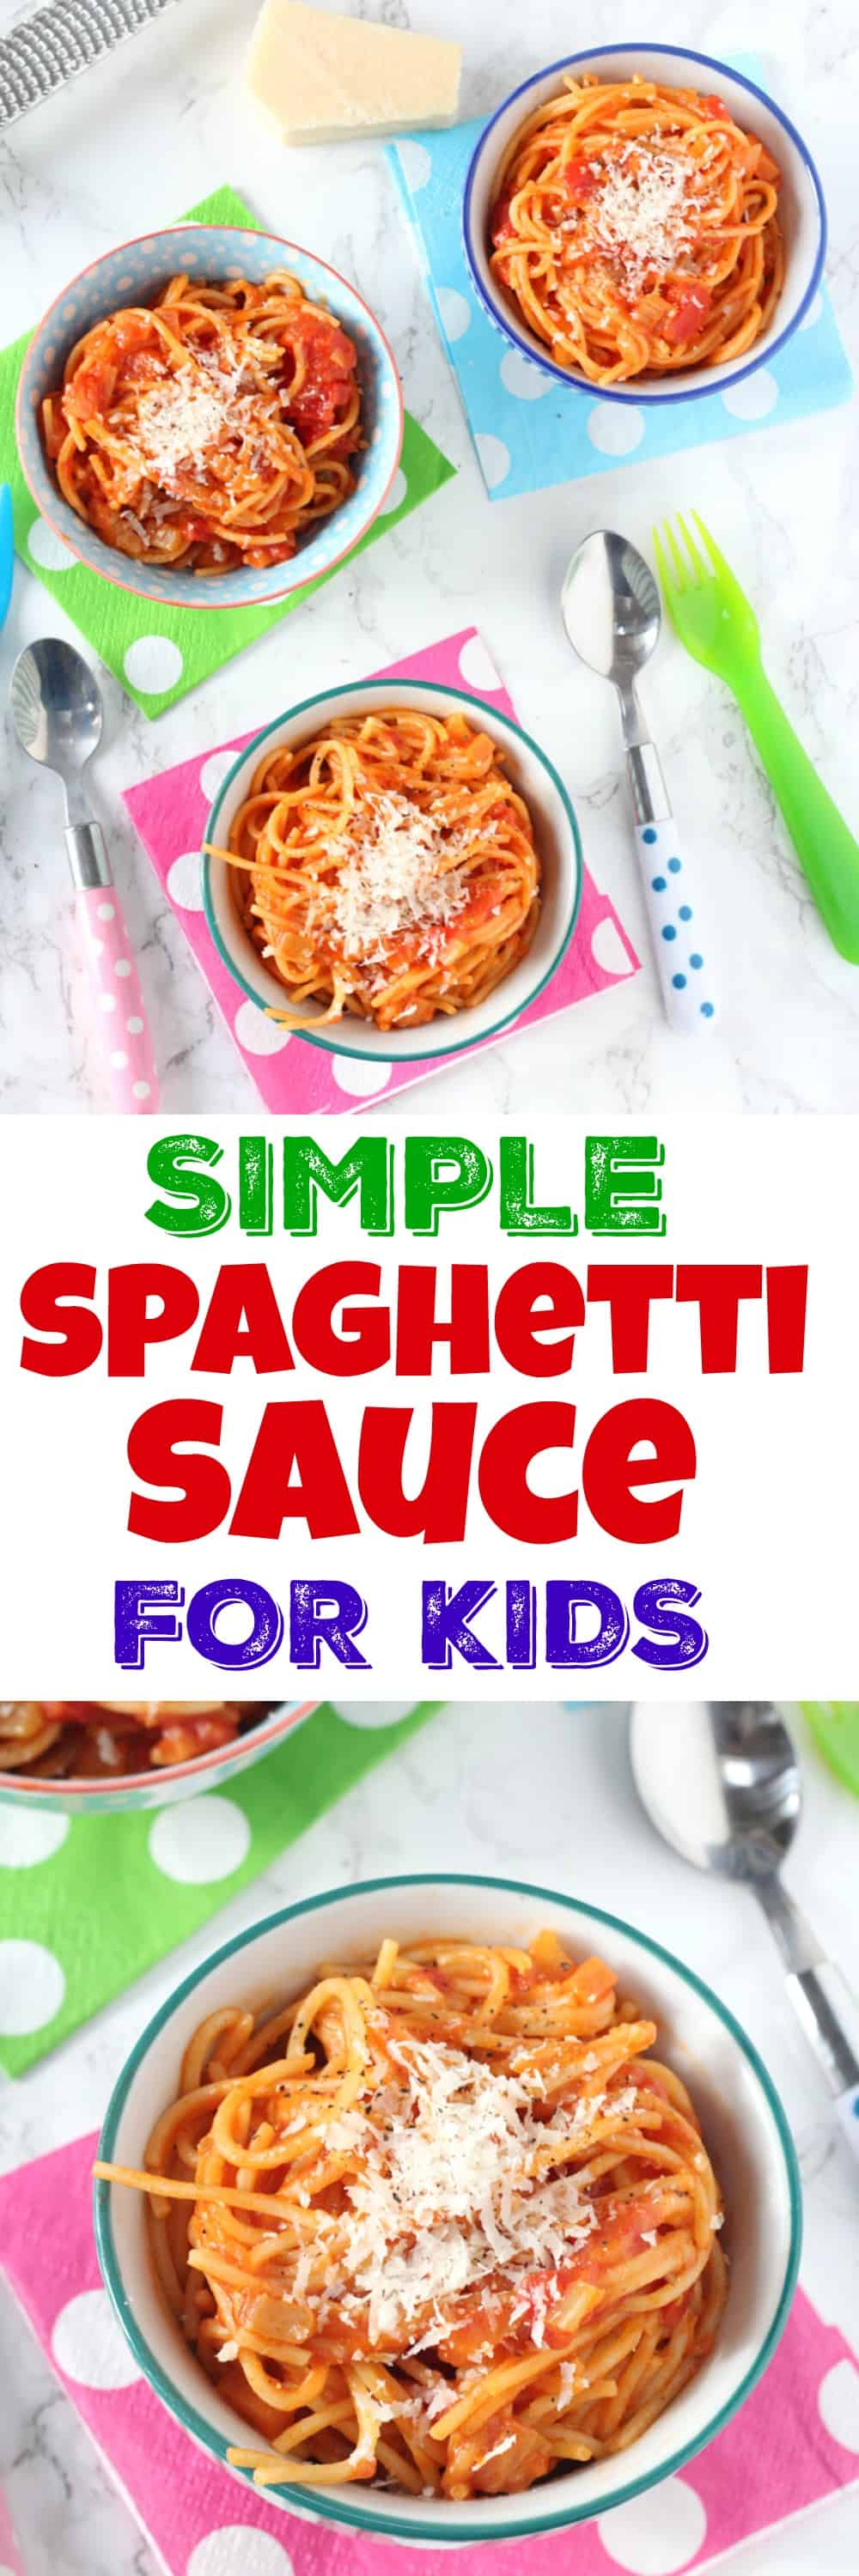 Simple tomato spaghetti for kids my fussy eater a super simple recipe for spaghetti and tomato sauce perfect to whip up for a forumfinder Choice Image